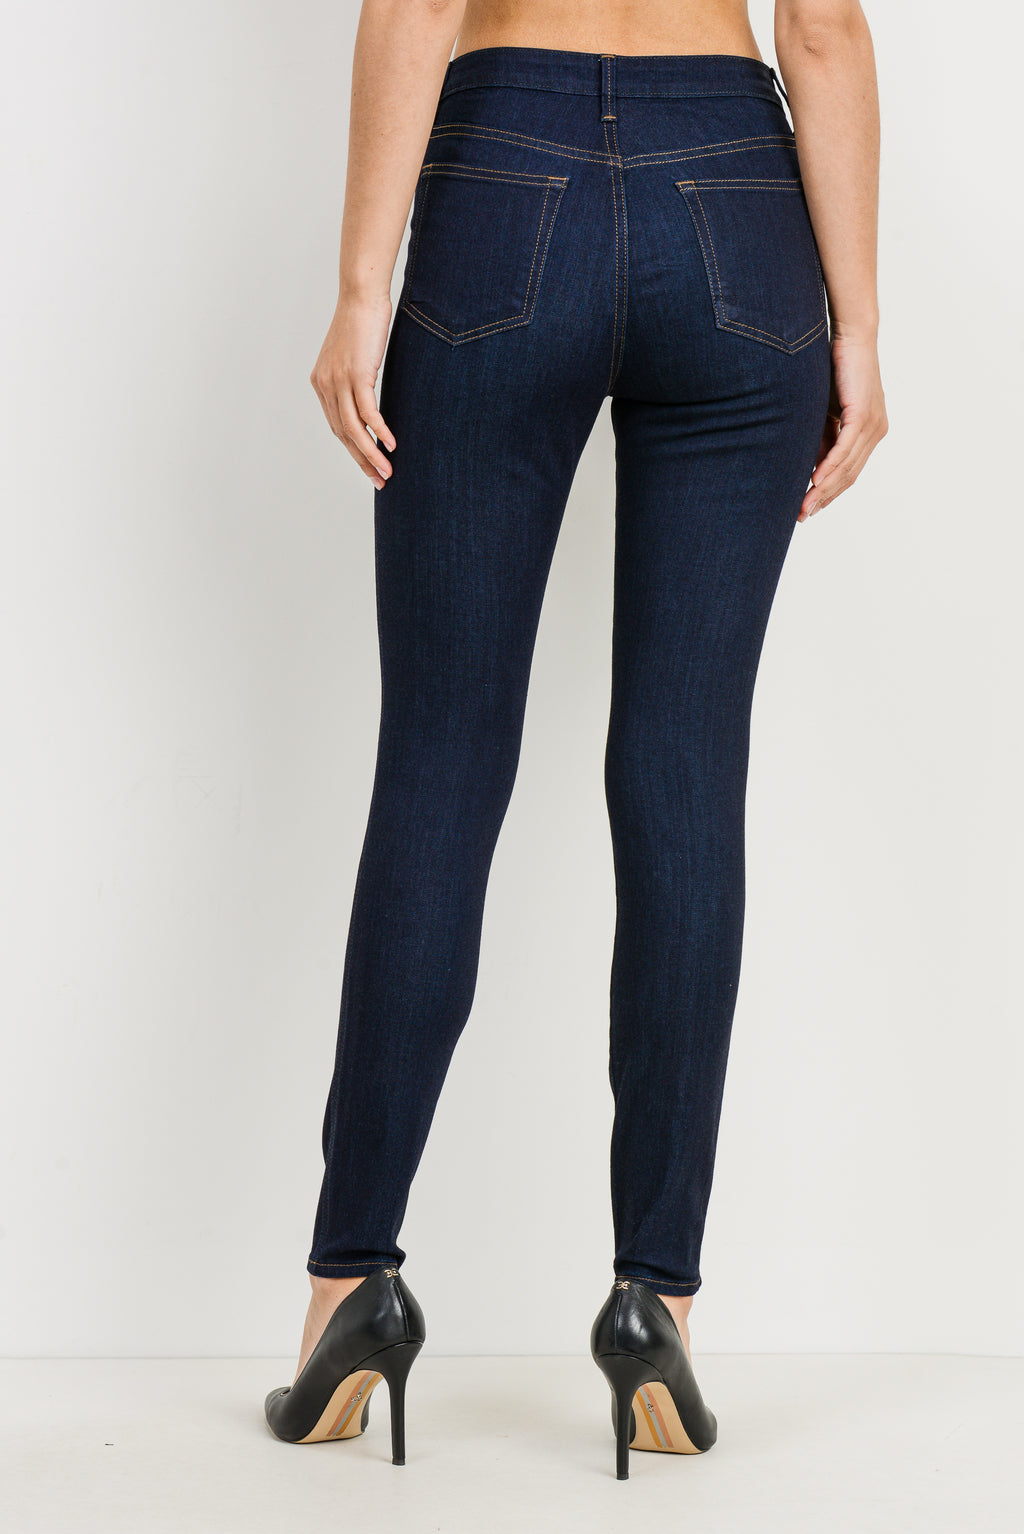 LAST CALL SIZE 25 | Classic Dark Wash Super Soft Skinny Jeans